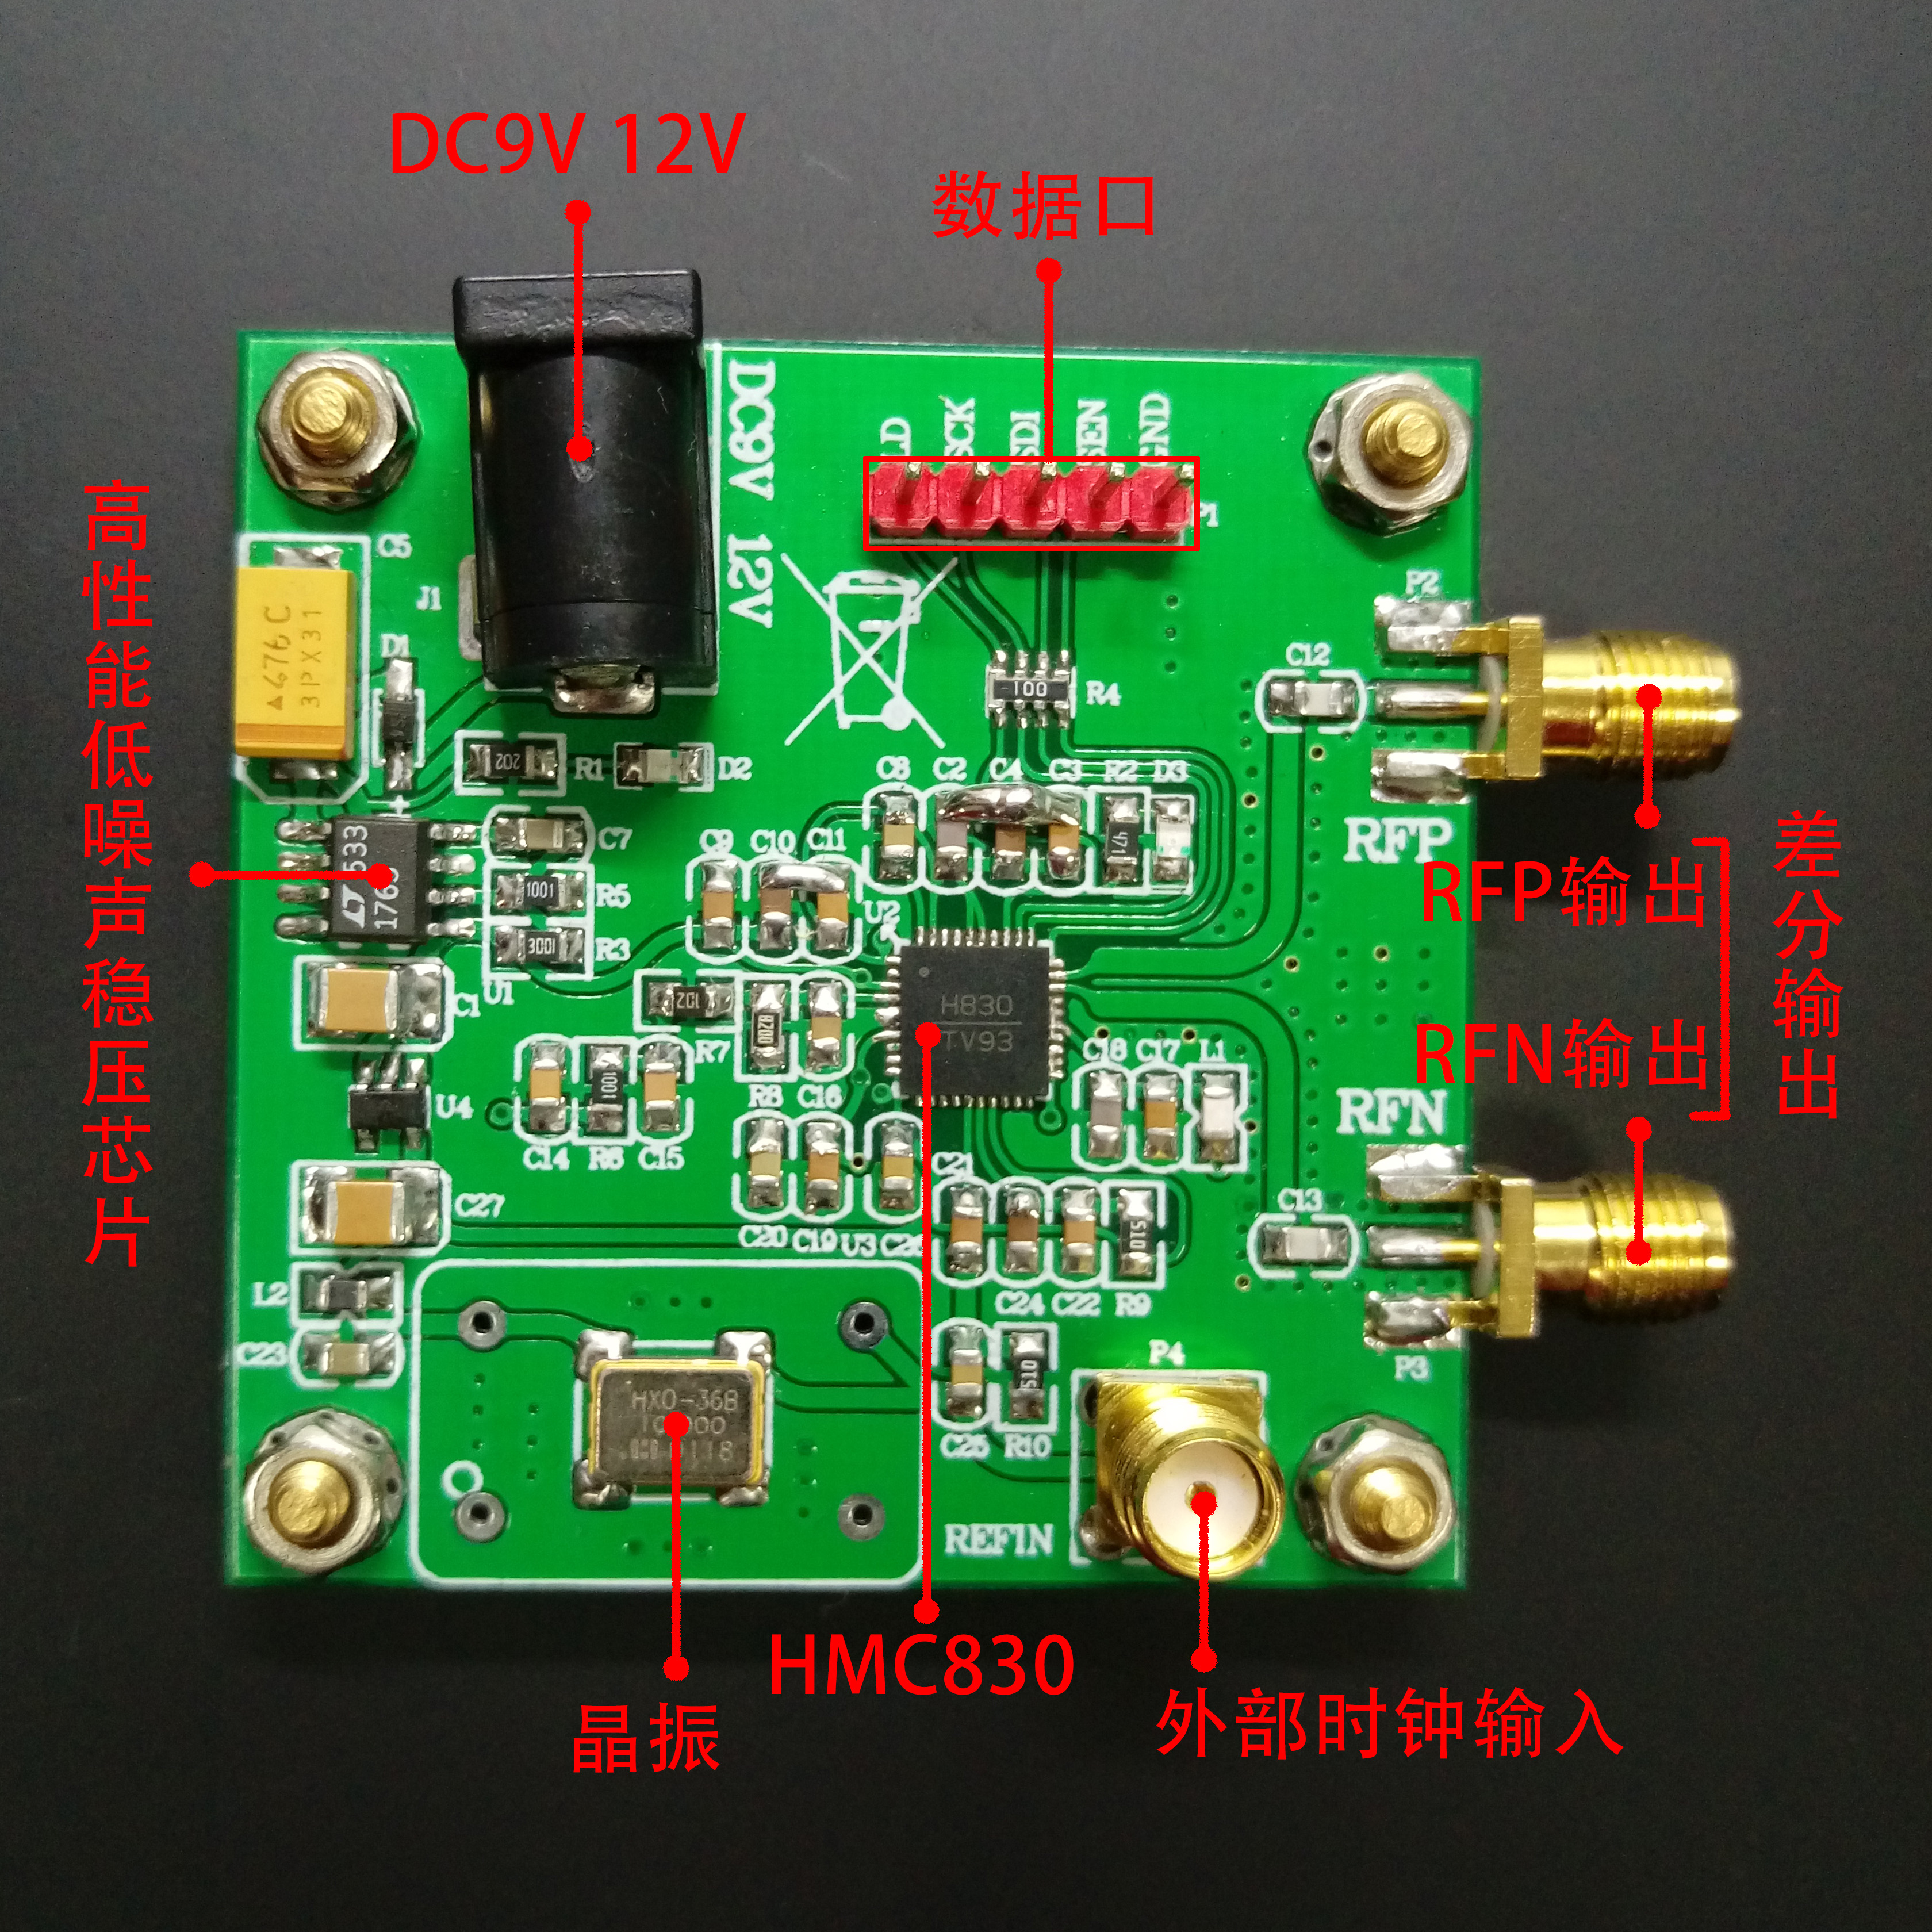 HMC830 Module PLL Frequency Source Signal Generator Integrated VCO Decimal N Frequency DivisionHMC830 Module PLL Frequency Source Signal Generator Integrated VCO Decimal N Frequency Division